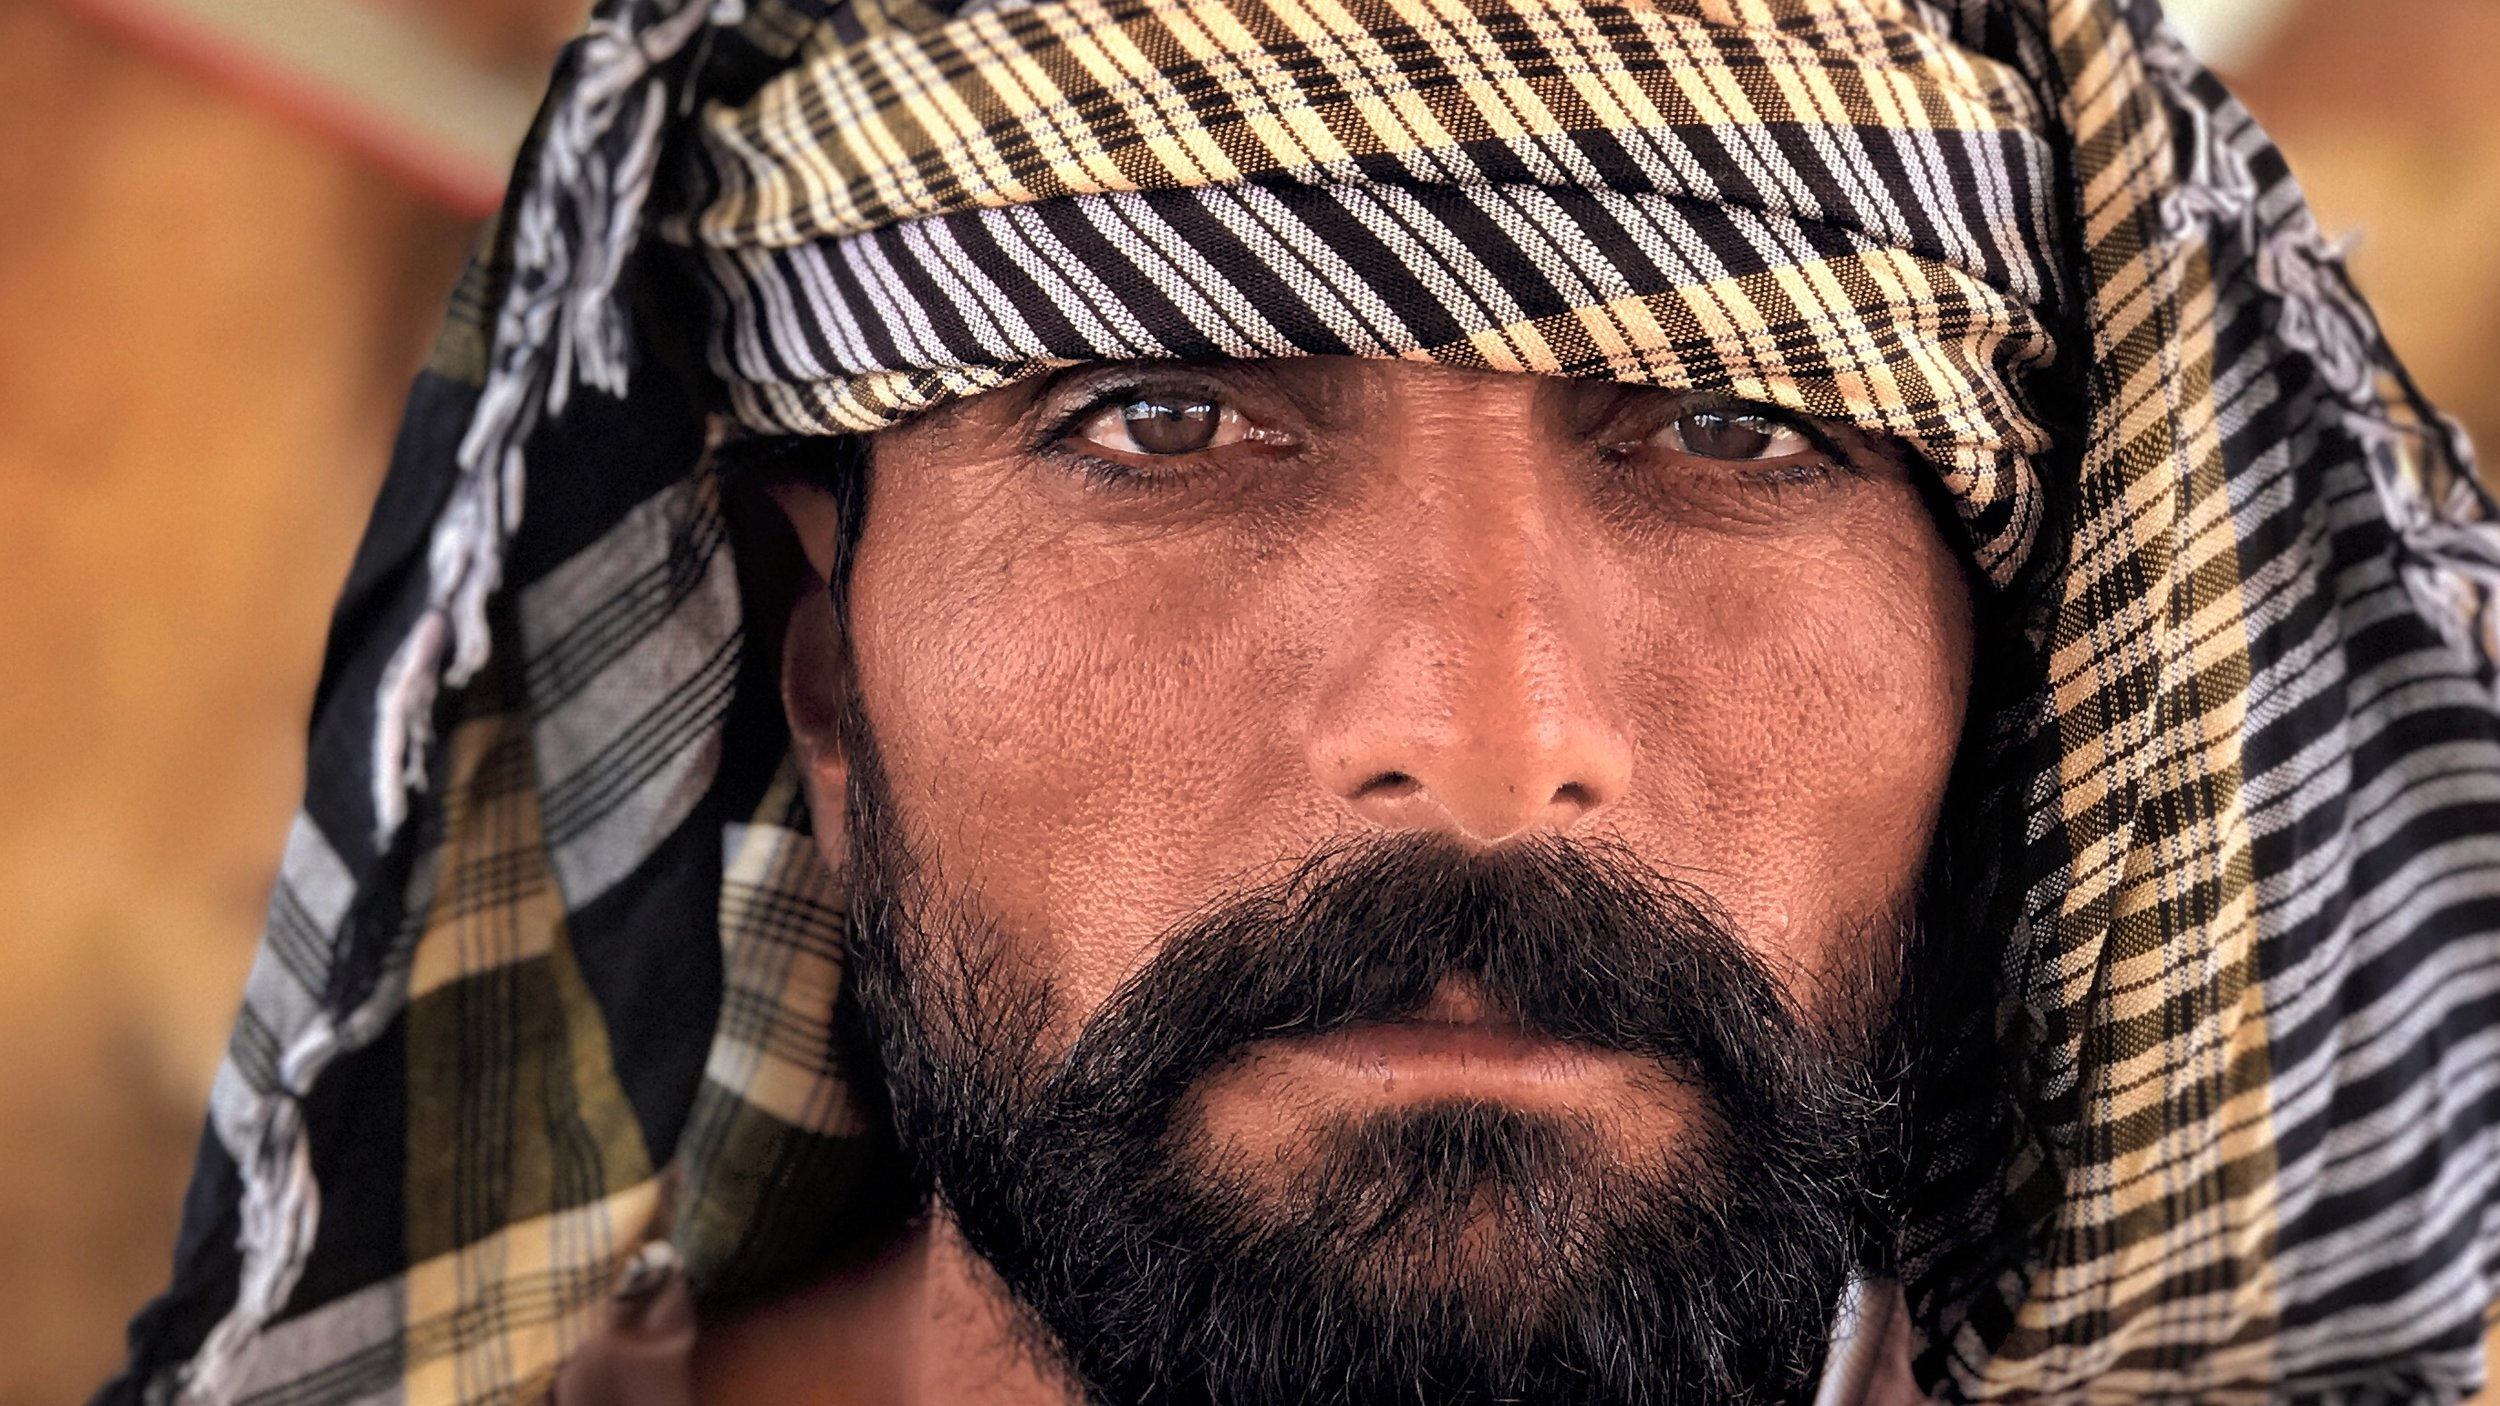 Afghani Camel Man  [Photo Credit: Rad A. Drew]